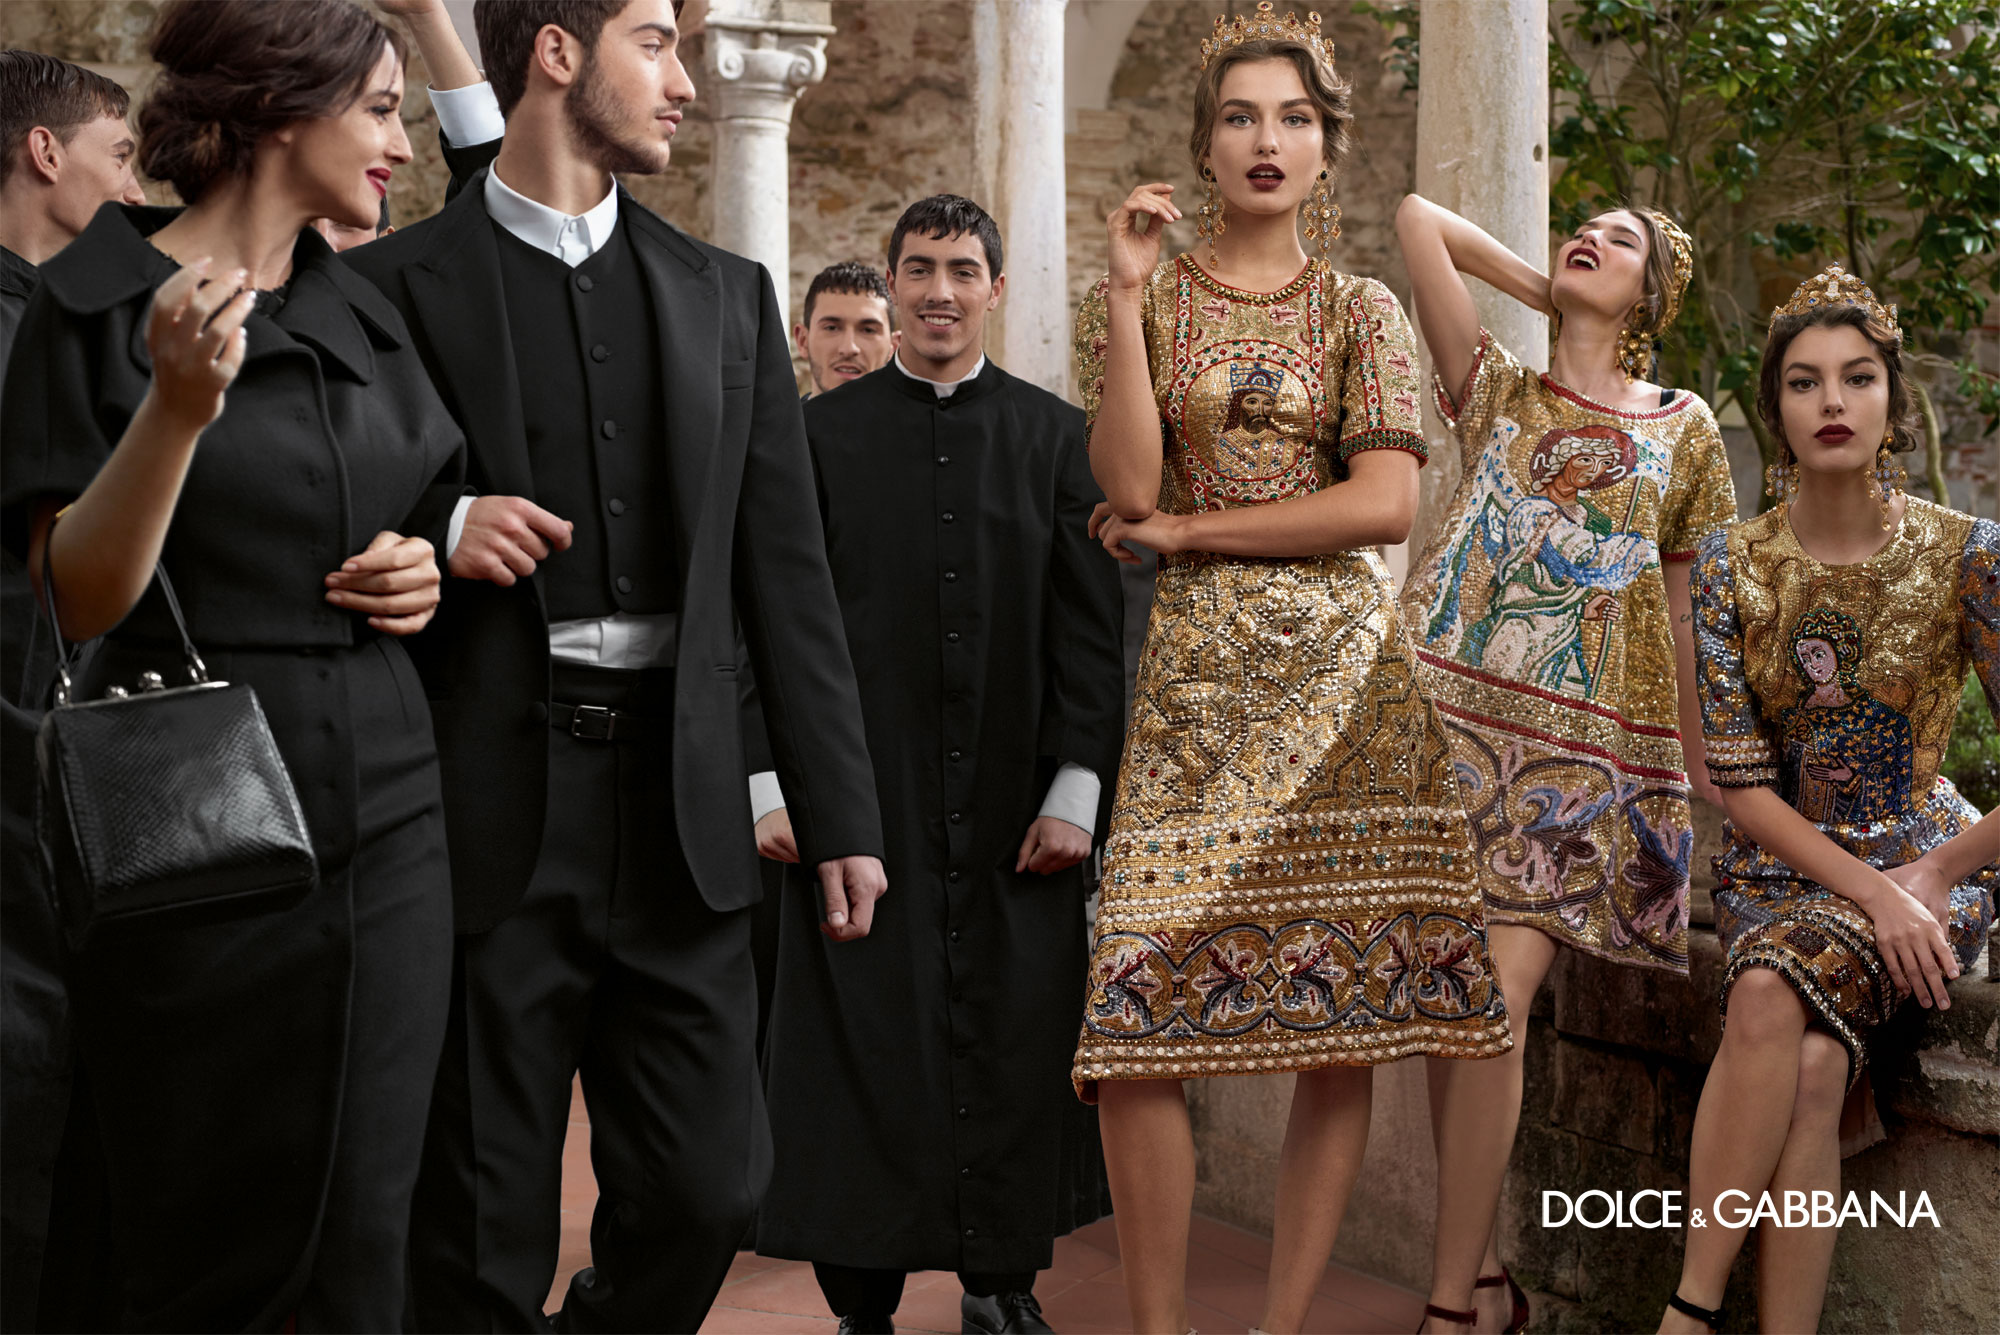 2000x1335 > Dolce And Gabbana Wallpapers